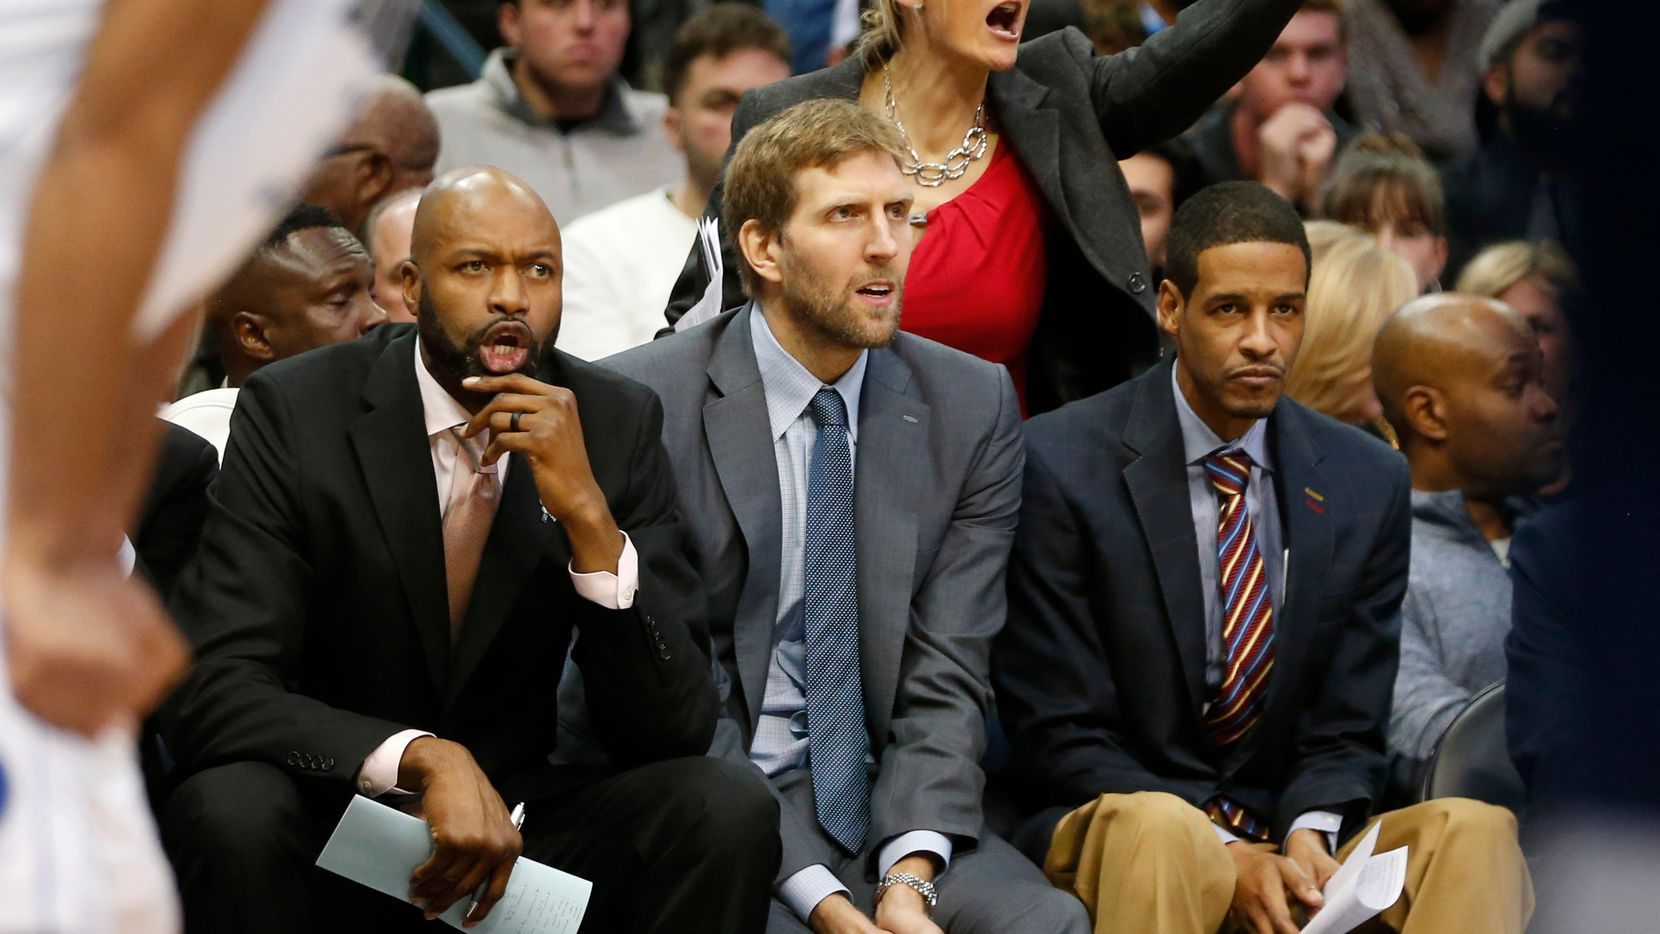 Dallas Mavericks assistant coaches Jamahl Mosley (left) and Stephen Silas sit alongside Dirk Nowitzki during a game against the Utah Jazz at American Airlines Center in Dallas on Wednesday, November 14, 2018.